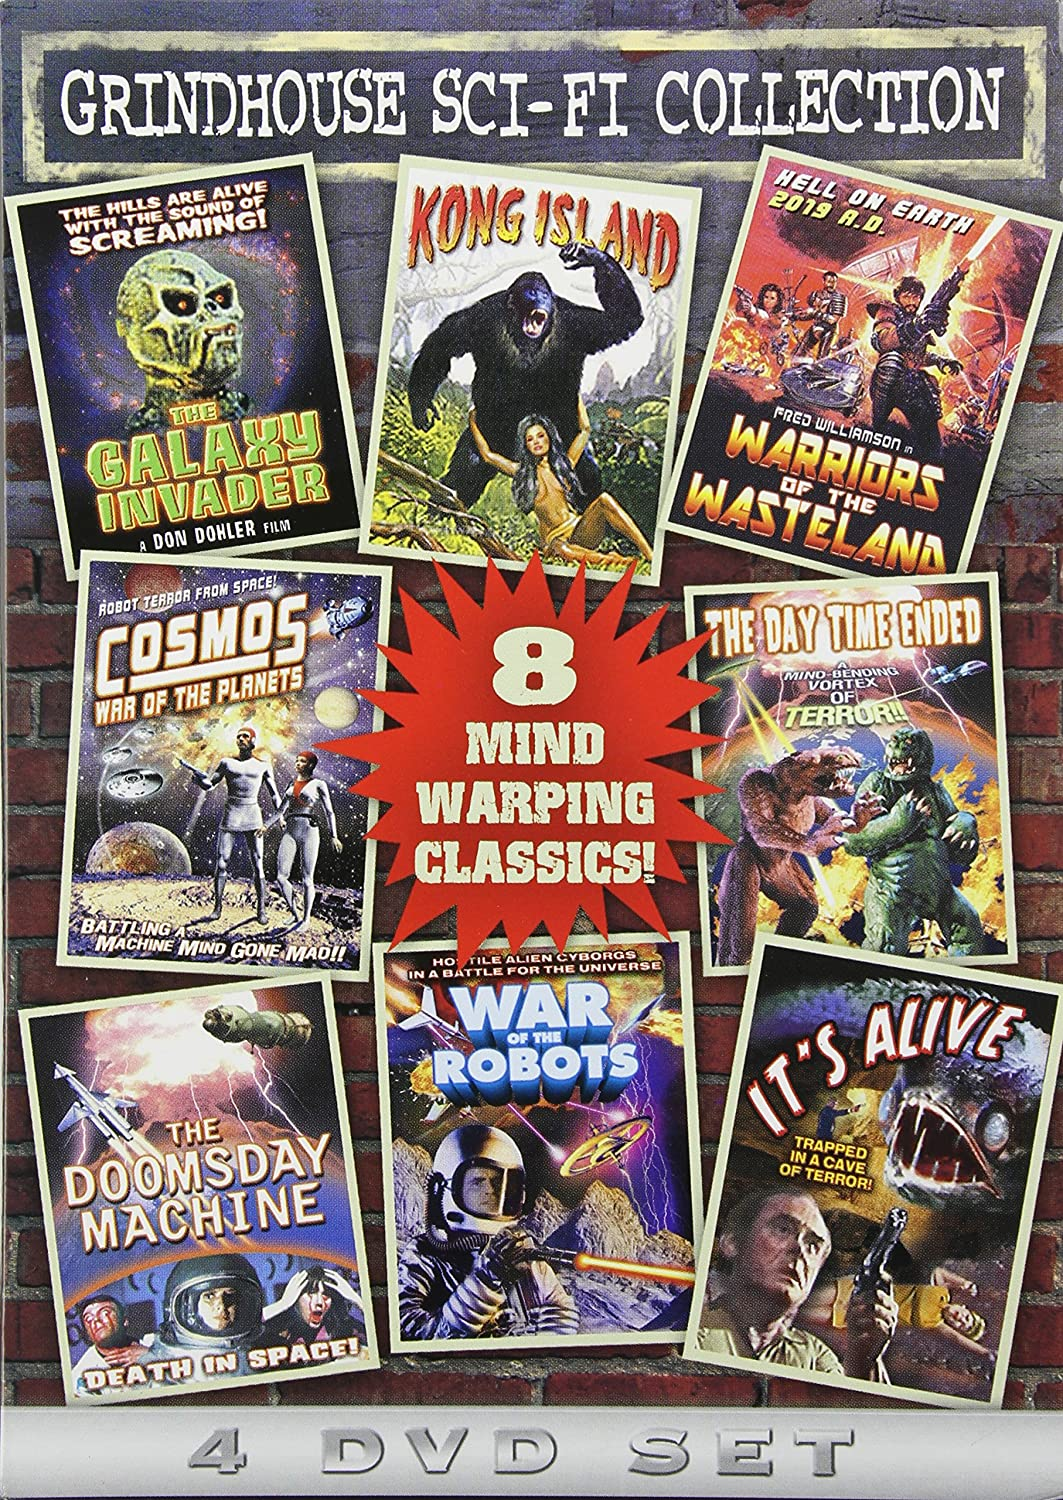 Amazon.com: Grindhouse Sci-Fi Collection (The Galaxy Invader / Kong Island  / Warriors of the Wasteland / Cosmos: War of the Planets / The Day Time  Ended ...